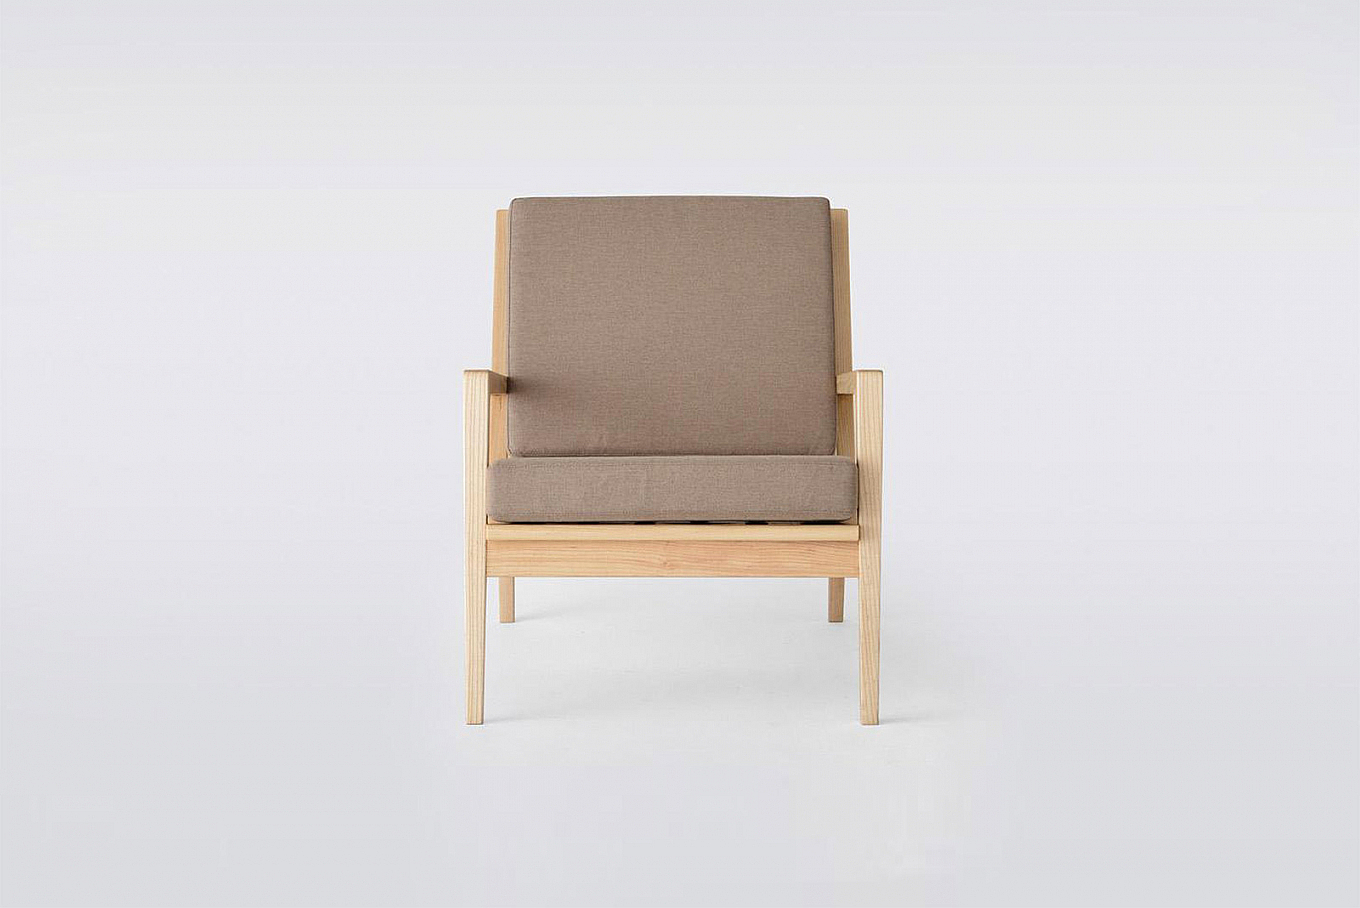 Design Brands From Shanghai to Feature at 100% Design (3)